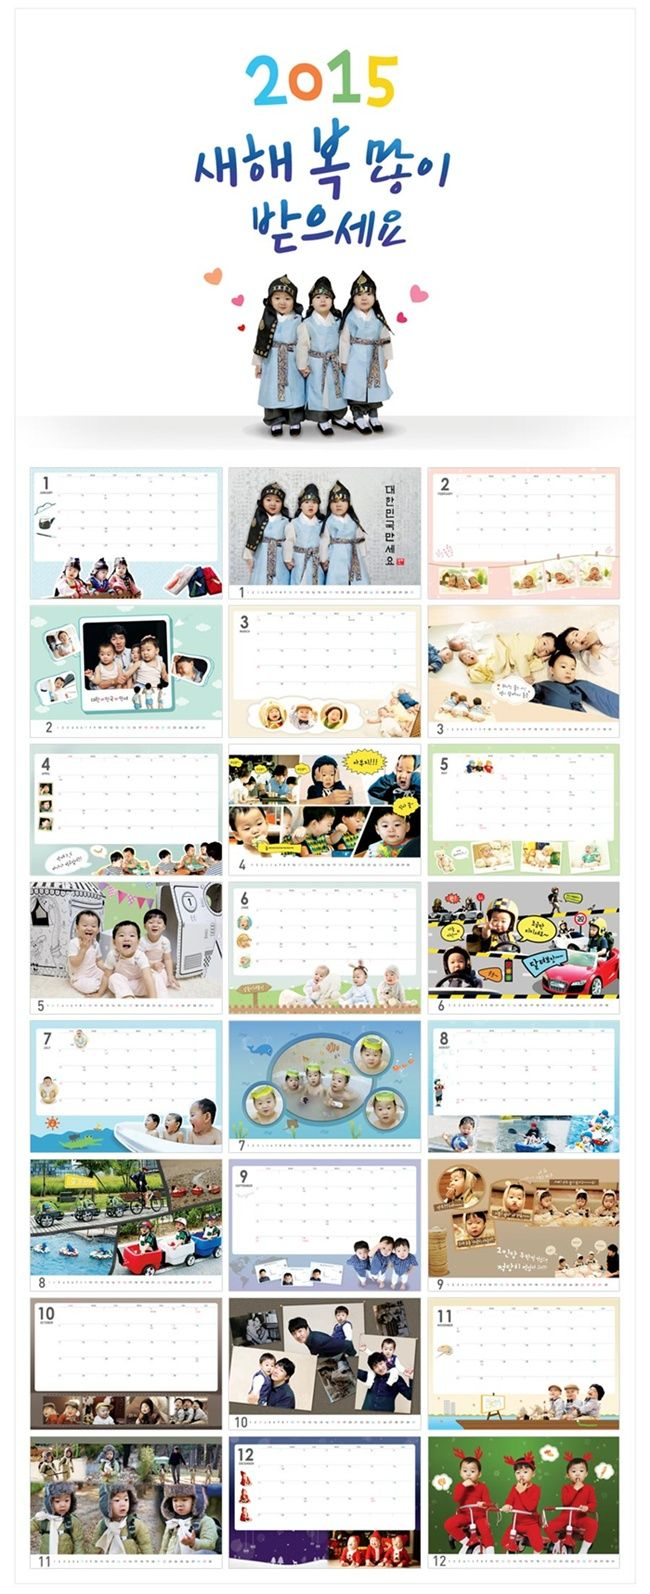 KBS The Return of Superman - Dahan Minguk Manse 2015 Calendar